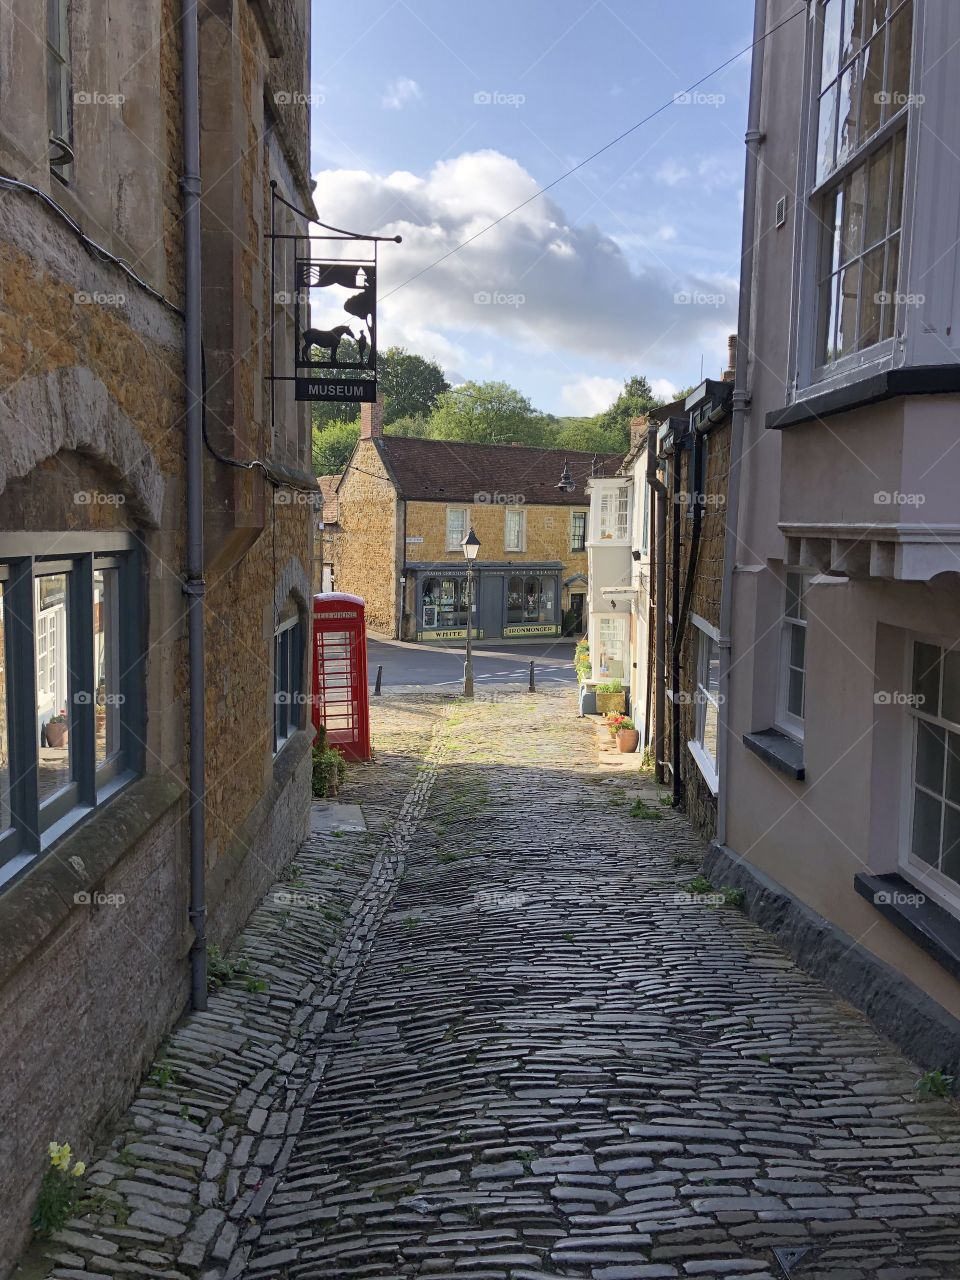 This delightful little pathway to the central point of Castle Cary is a reminder of the picturesque importance of this village. The red telephone box perhaps a reminder of days past and will earn its place in history in the future.